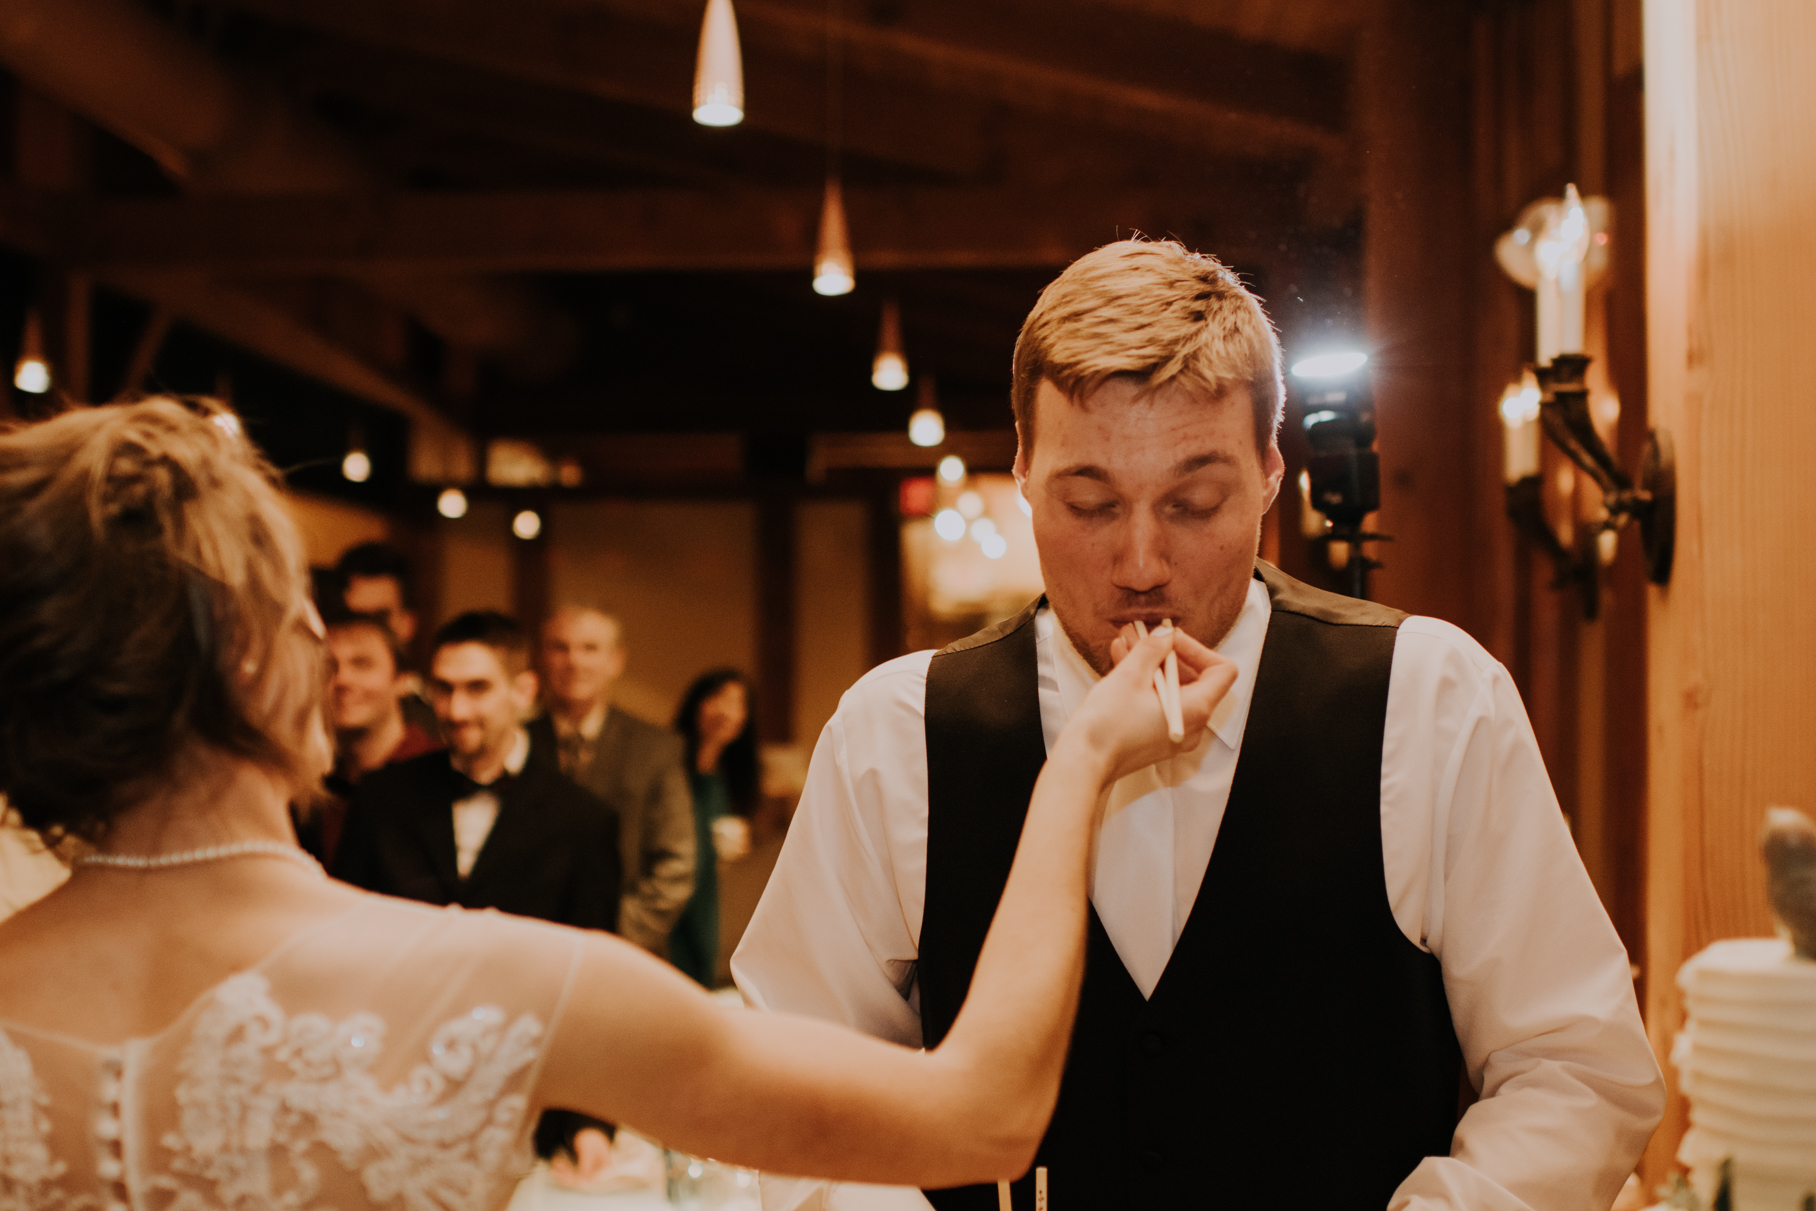 freehearted film co | tampa wedding photo and film | pa wedding